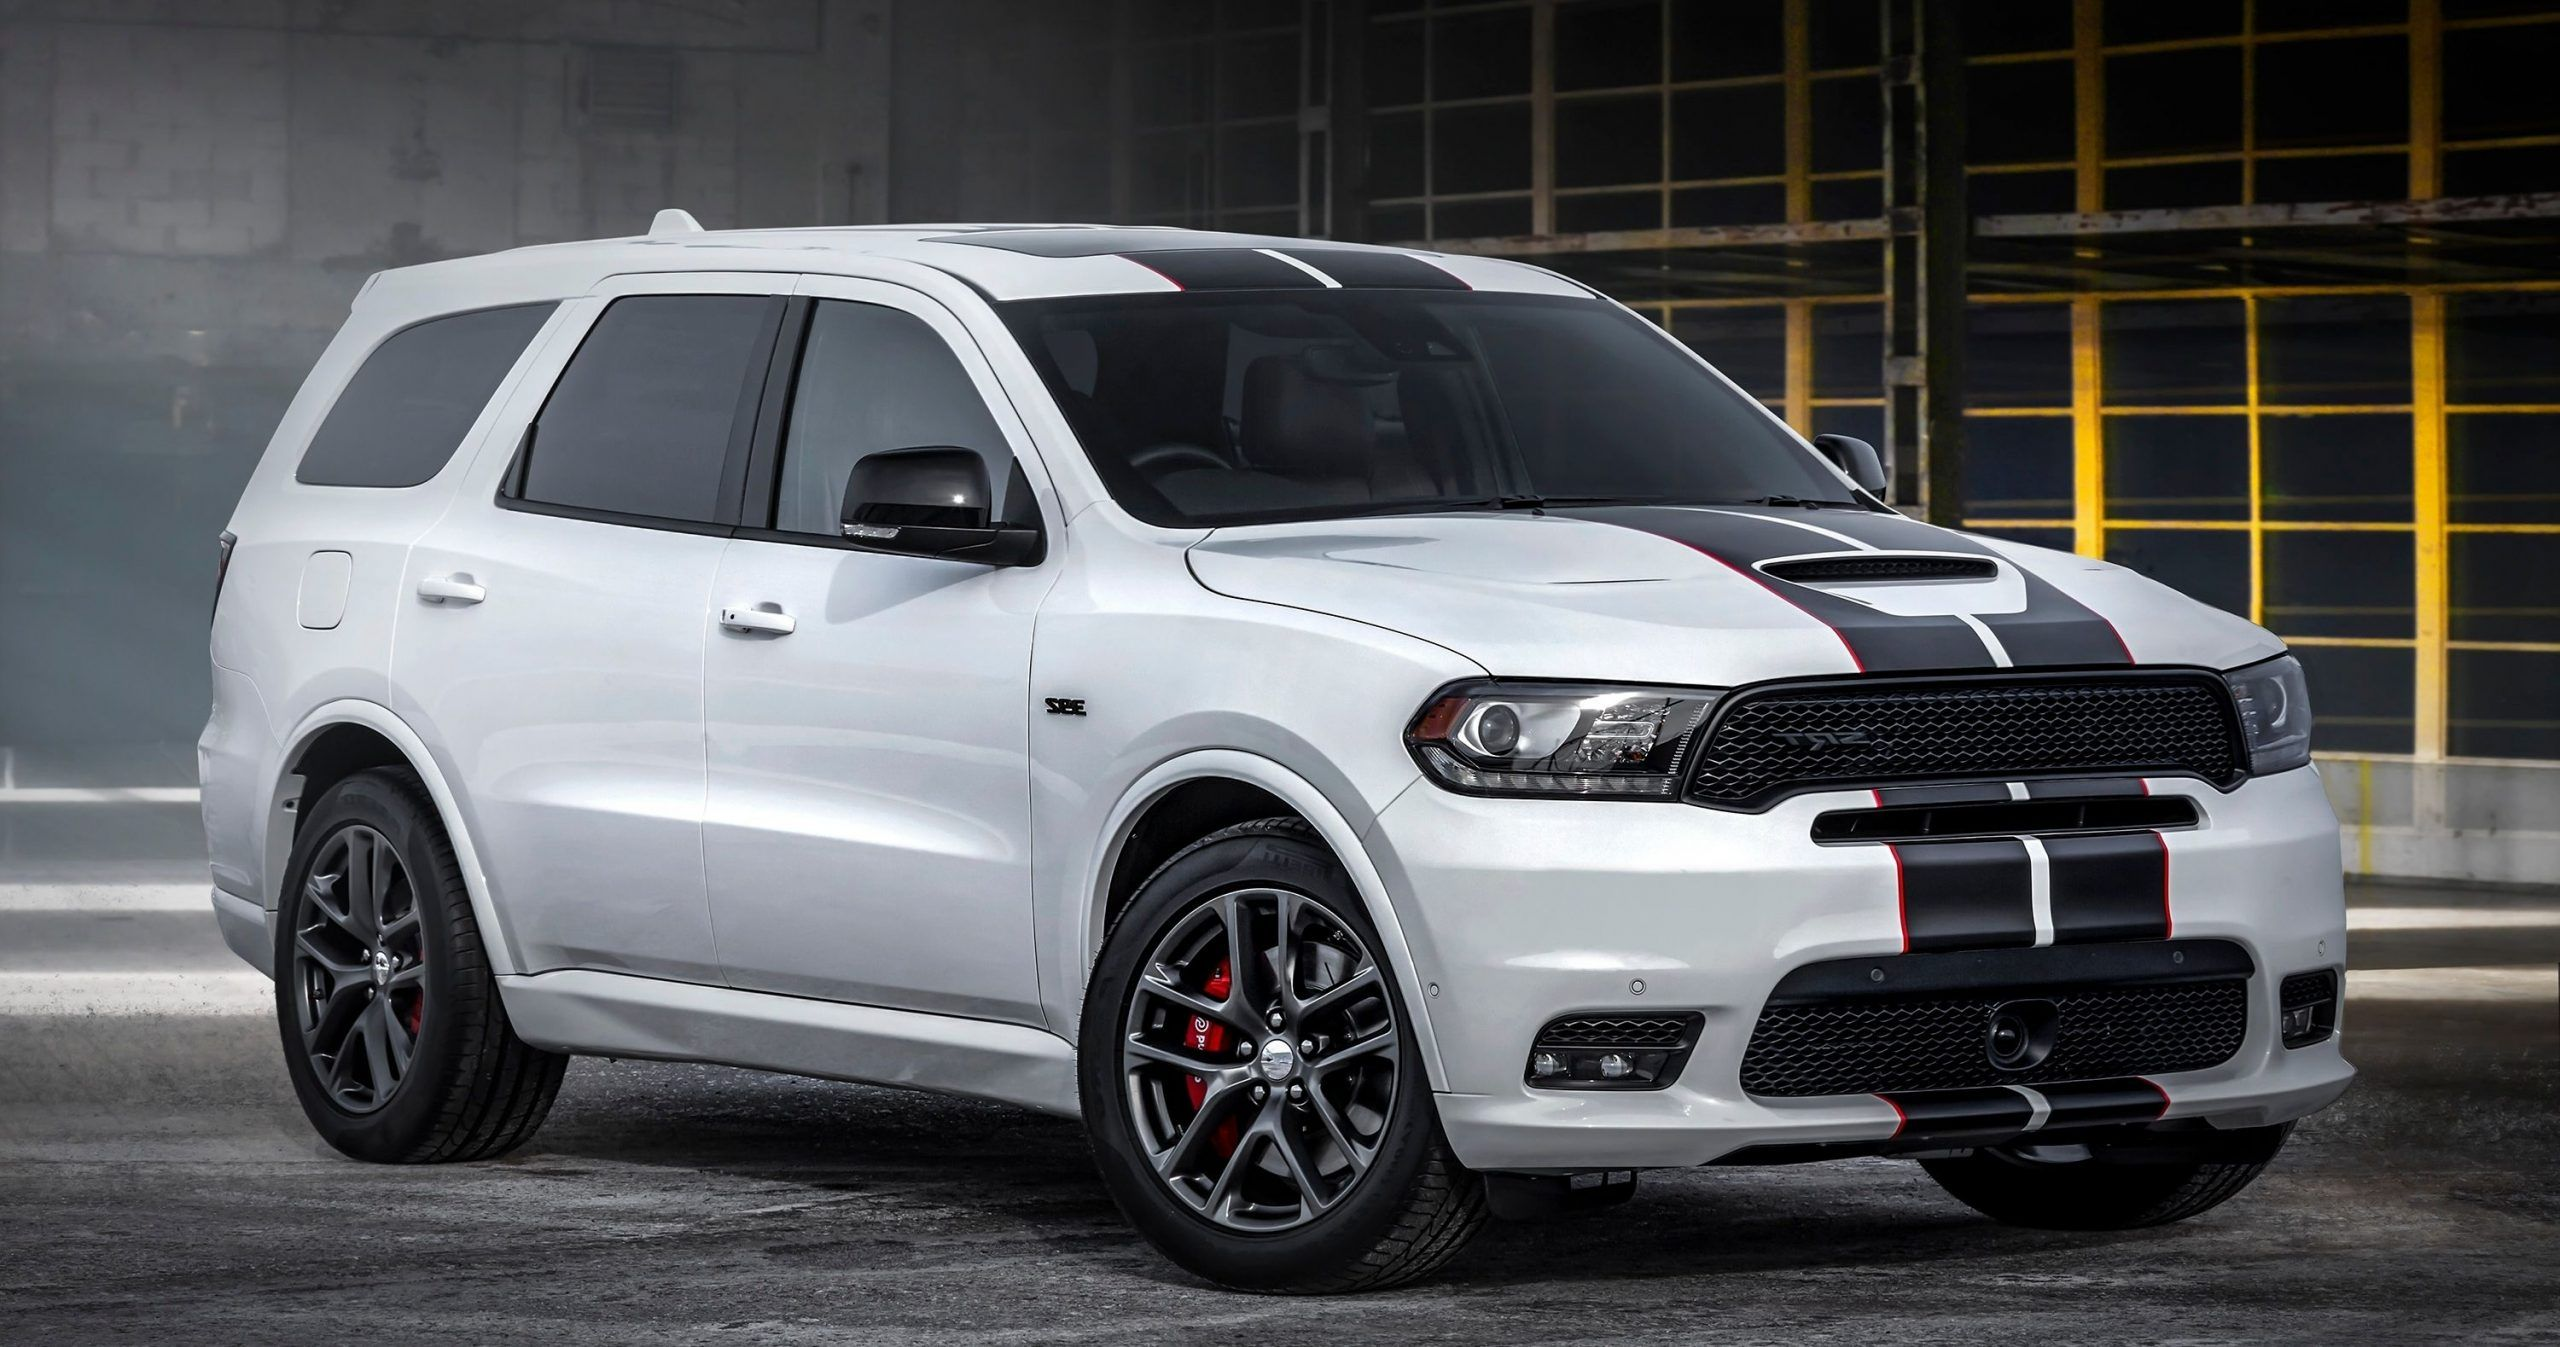 2020 Dodge Durango Srt Redesign And Concept In 2020 Dodge Durango Srt Dodge